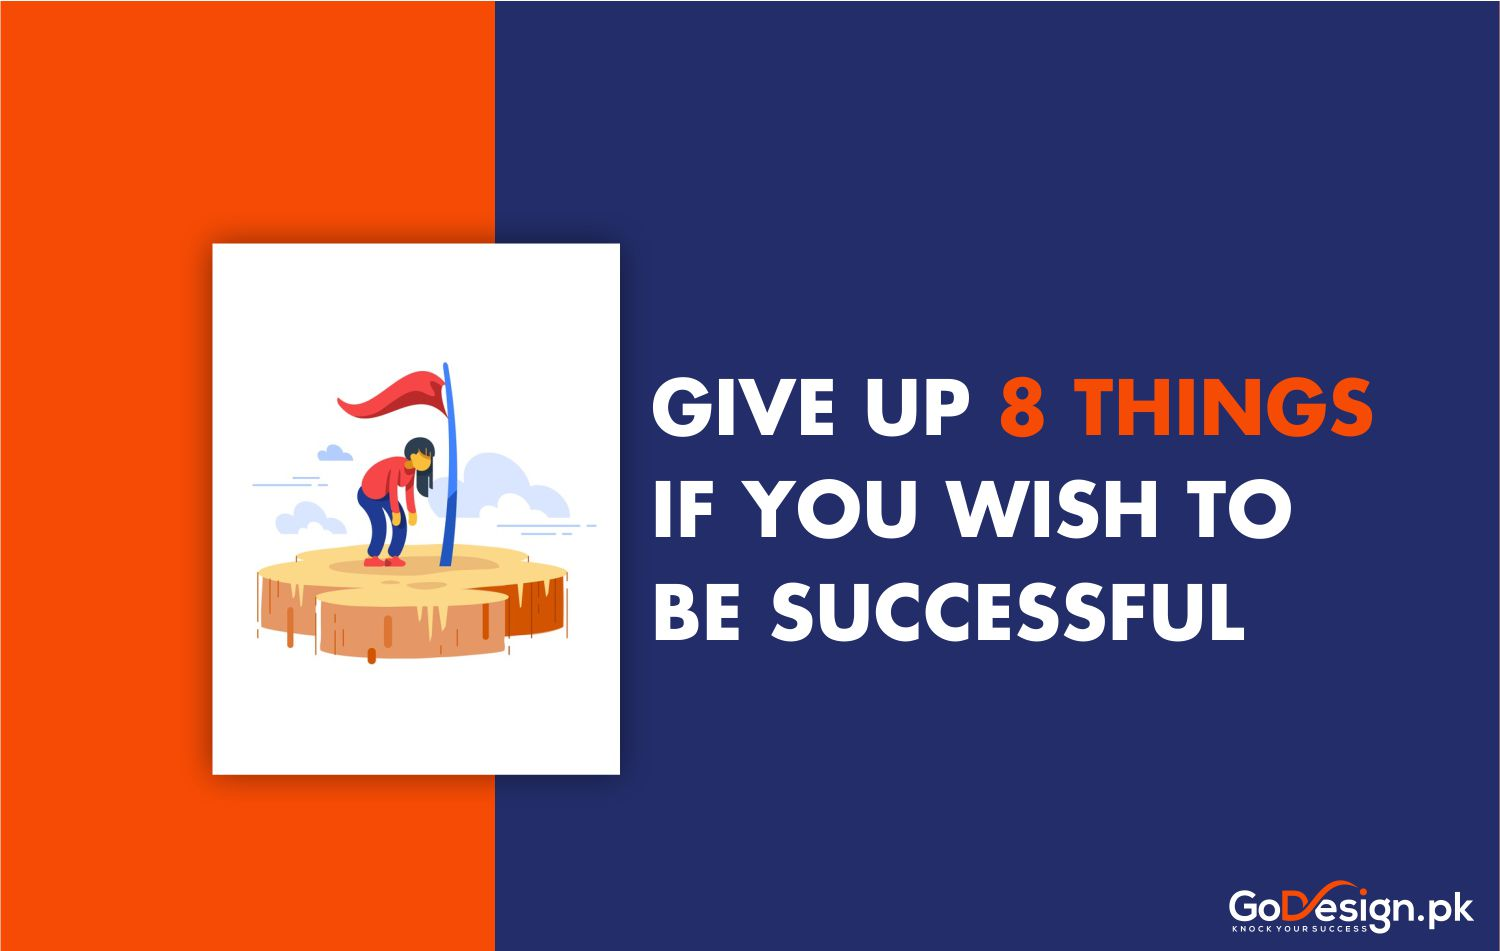 Give up 8 things, wish to be successfull